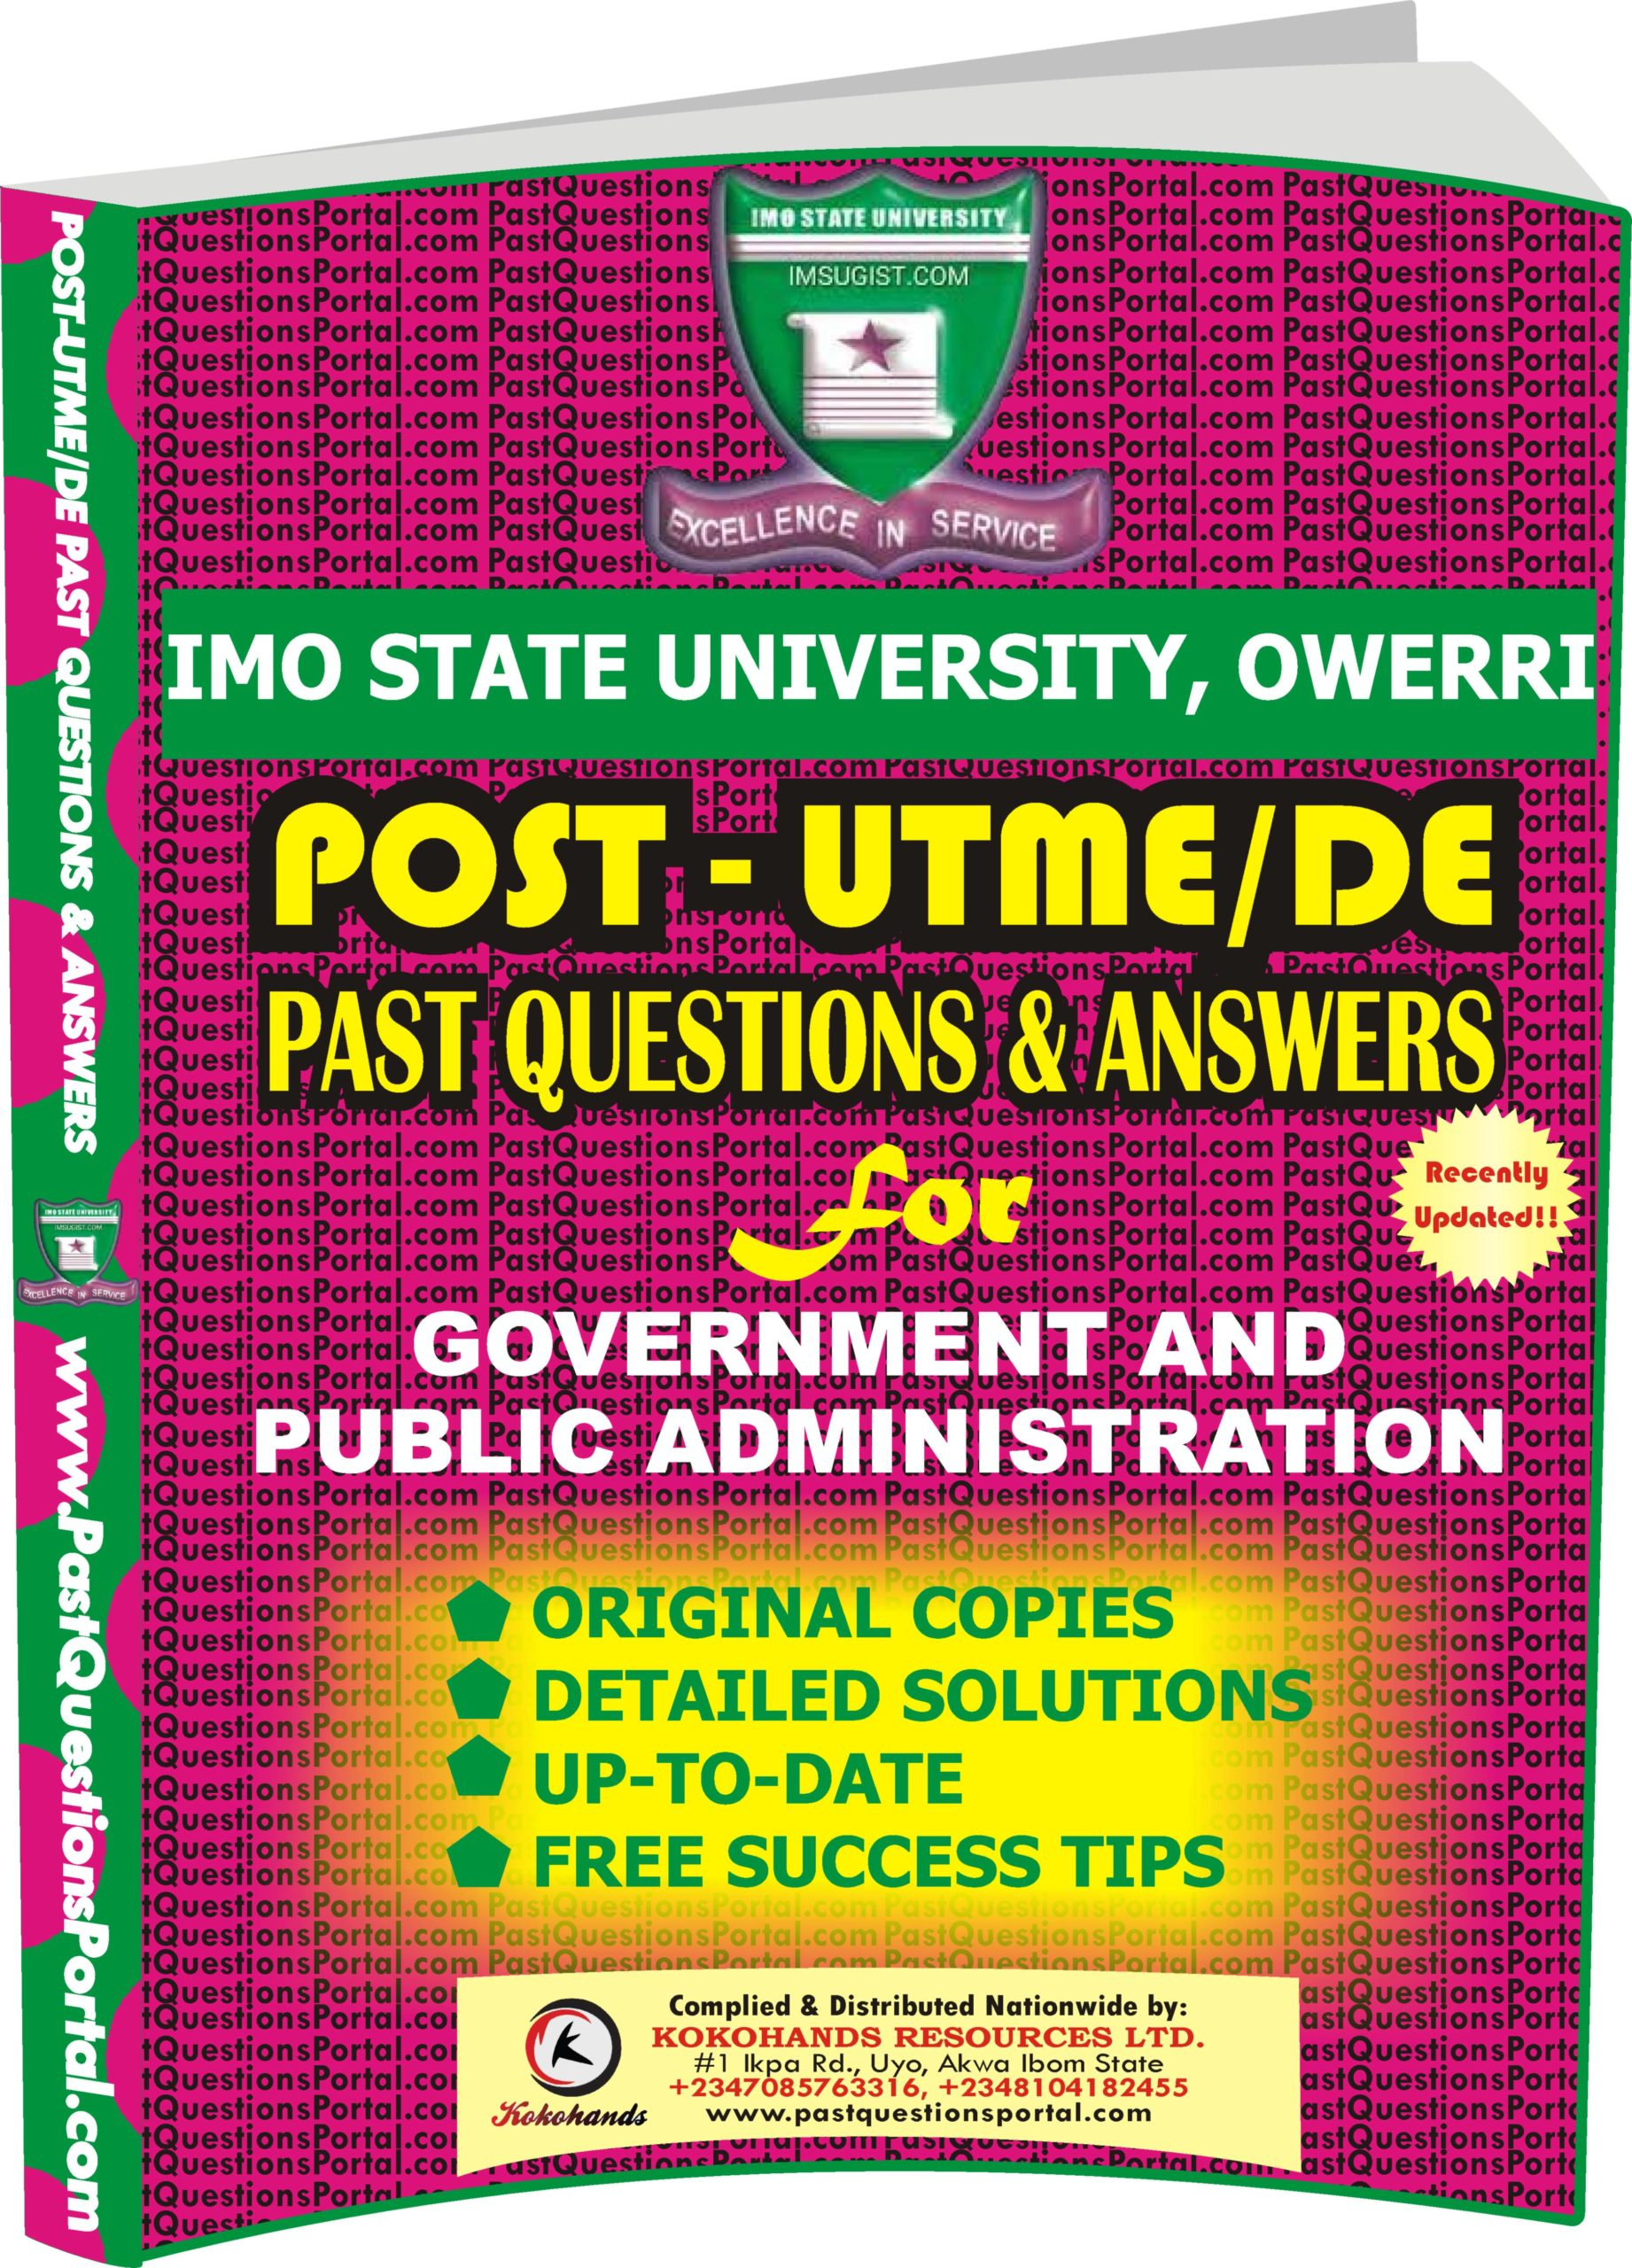 IMSU Post UTME Past Questions for Government and Public Administration